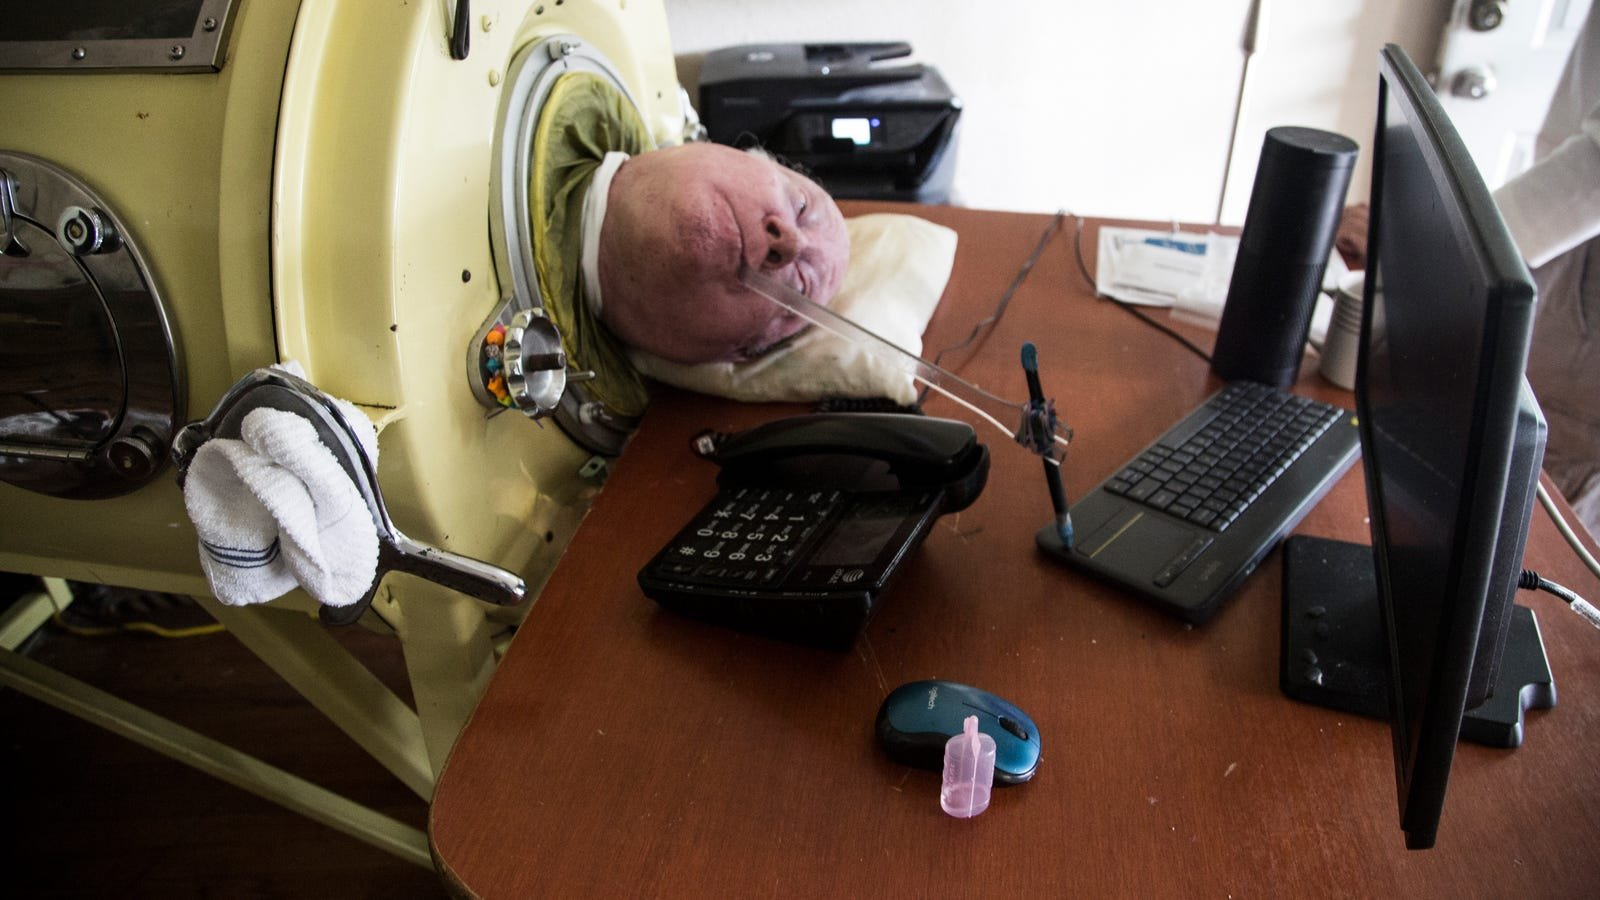 Alexander writes his memoir using a pen attached to a stick. Photo: Jennings Brown for Gizmodo